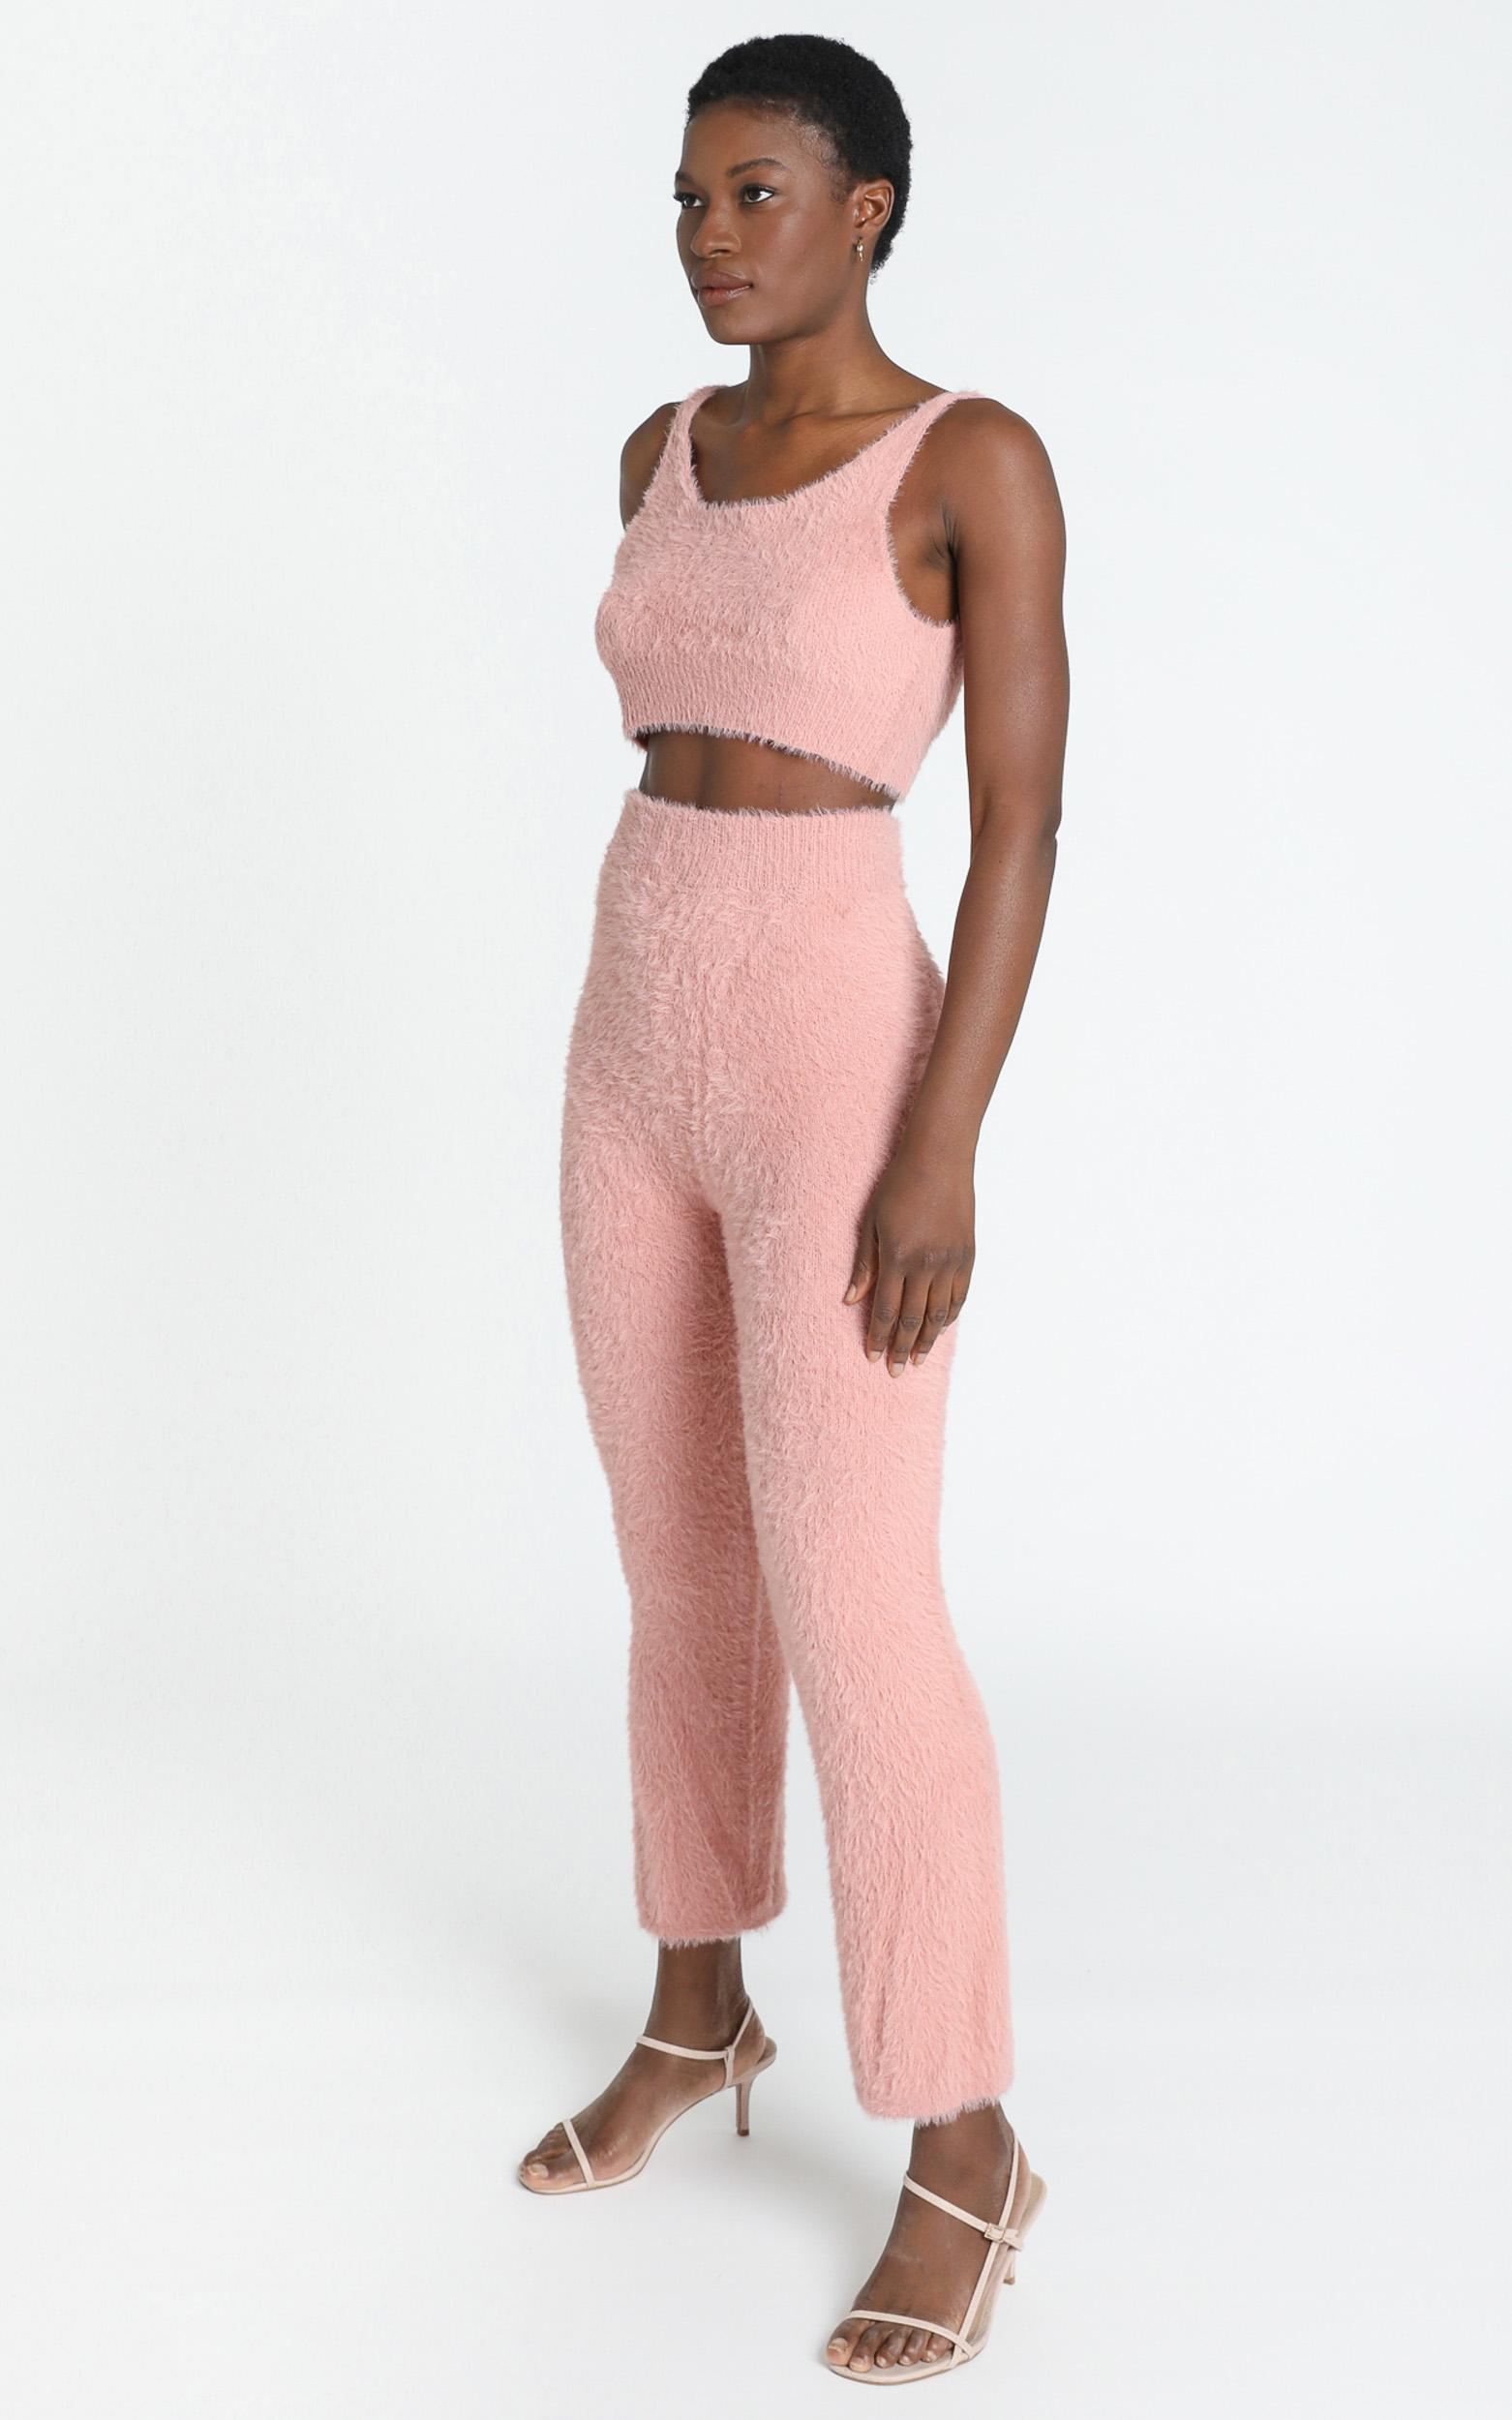 Athena Fluffy Knit Two Piece Set in Blush - S, Blush, hi-res image number null